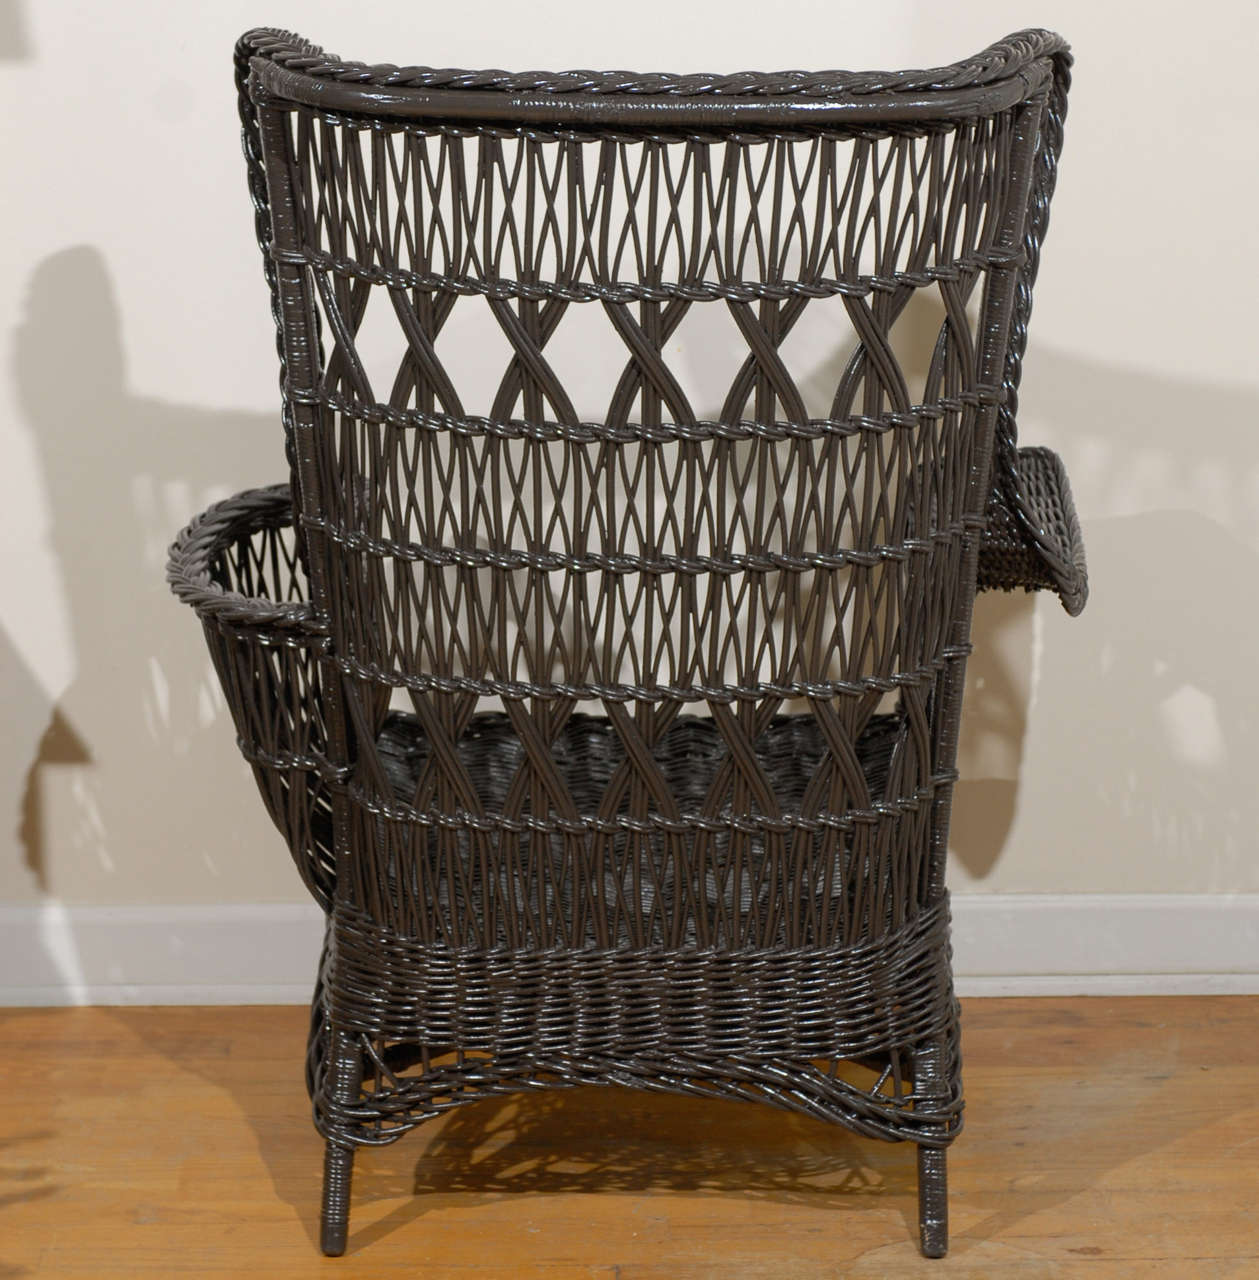 Antique American Wicker Wing Chair with Magazine Pocket For Sale 3